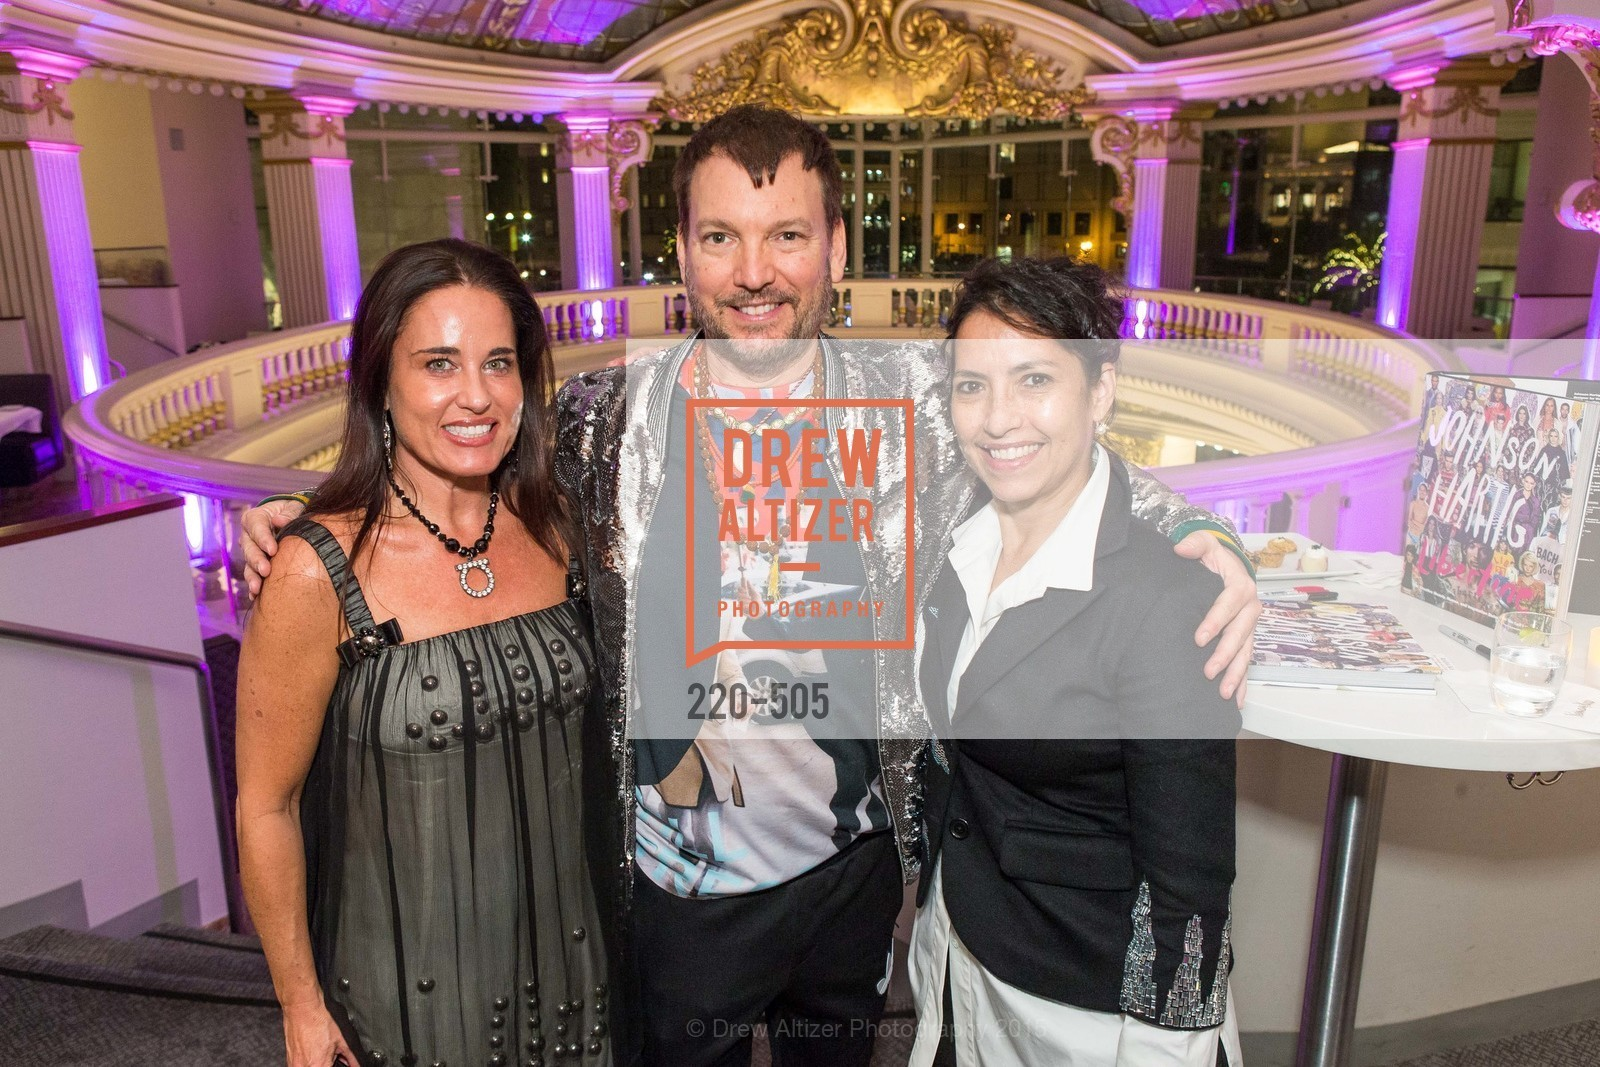 Natalia Urrutia, Johnson Hartig, Maya Meux, Libertine Cocktail Party at Neiman Marcus, Neiman Marcus, November 10th, 2015,Drew Altizer, Drew Altizer Photography, full-service agency, private events, San Francisco photographer, photographer california